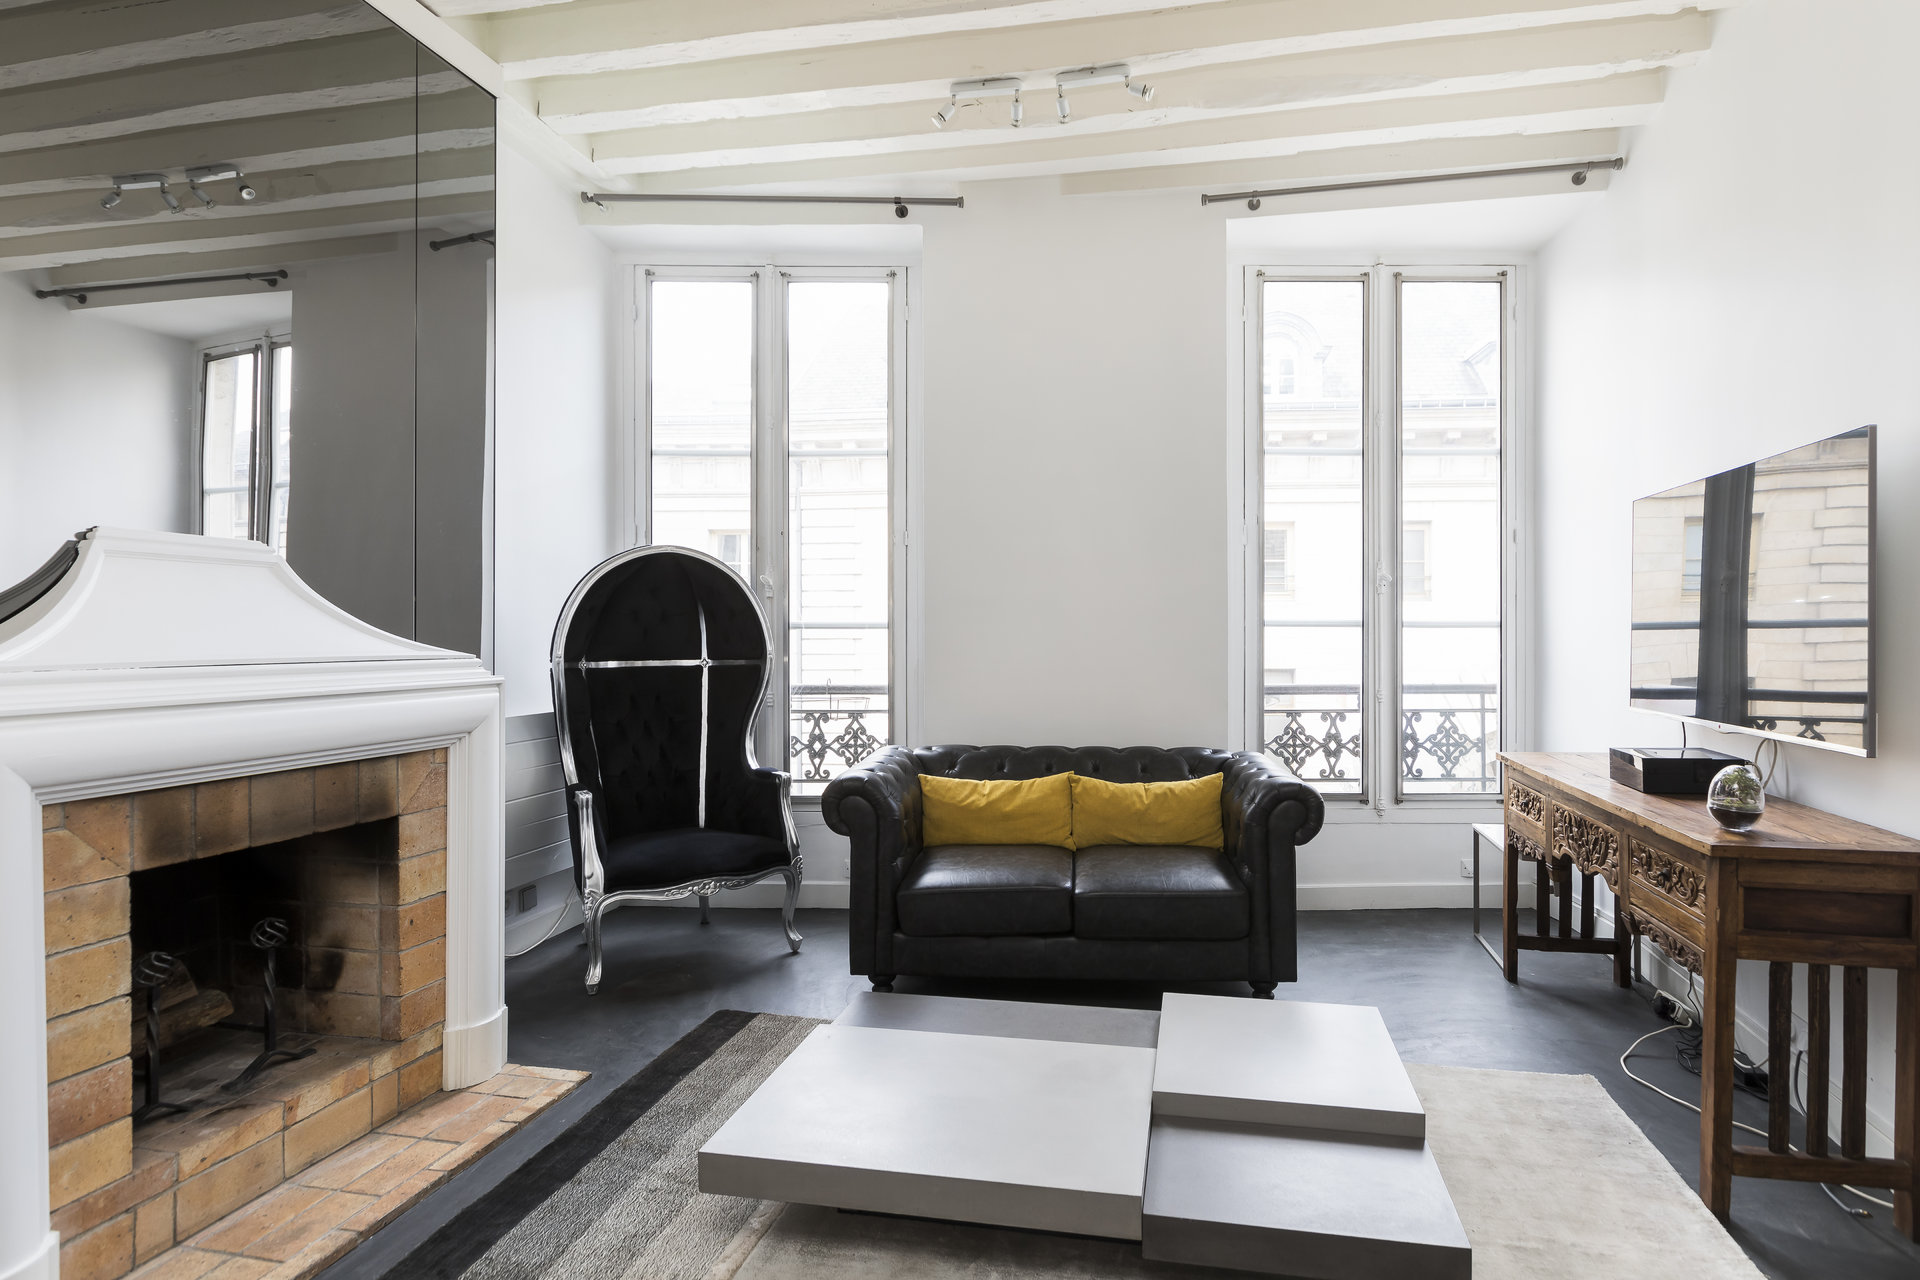 charming-duplex-for-sale-rue-faubourg-saint-honore-fireplace-cellar-recent-renovation